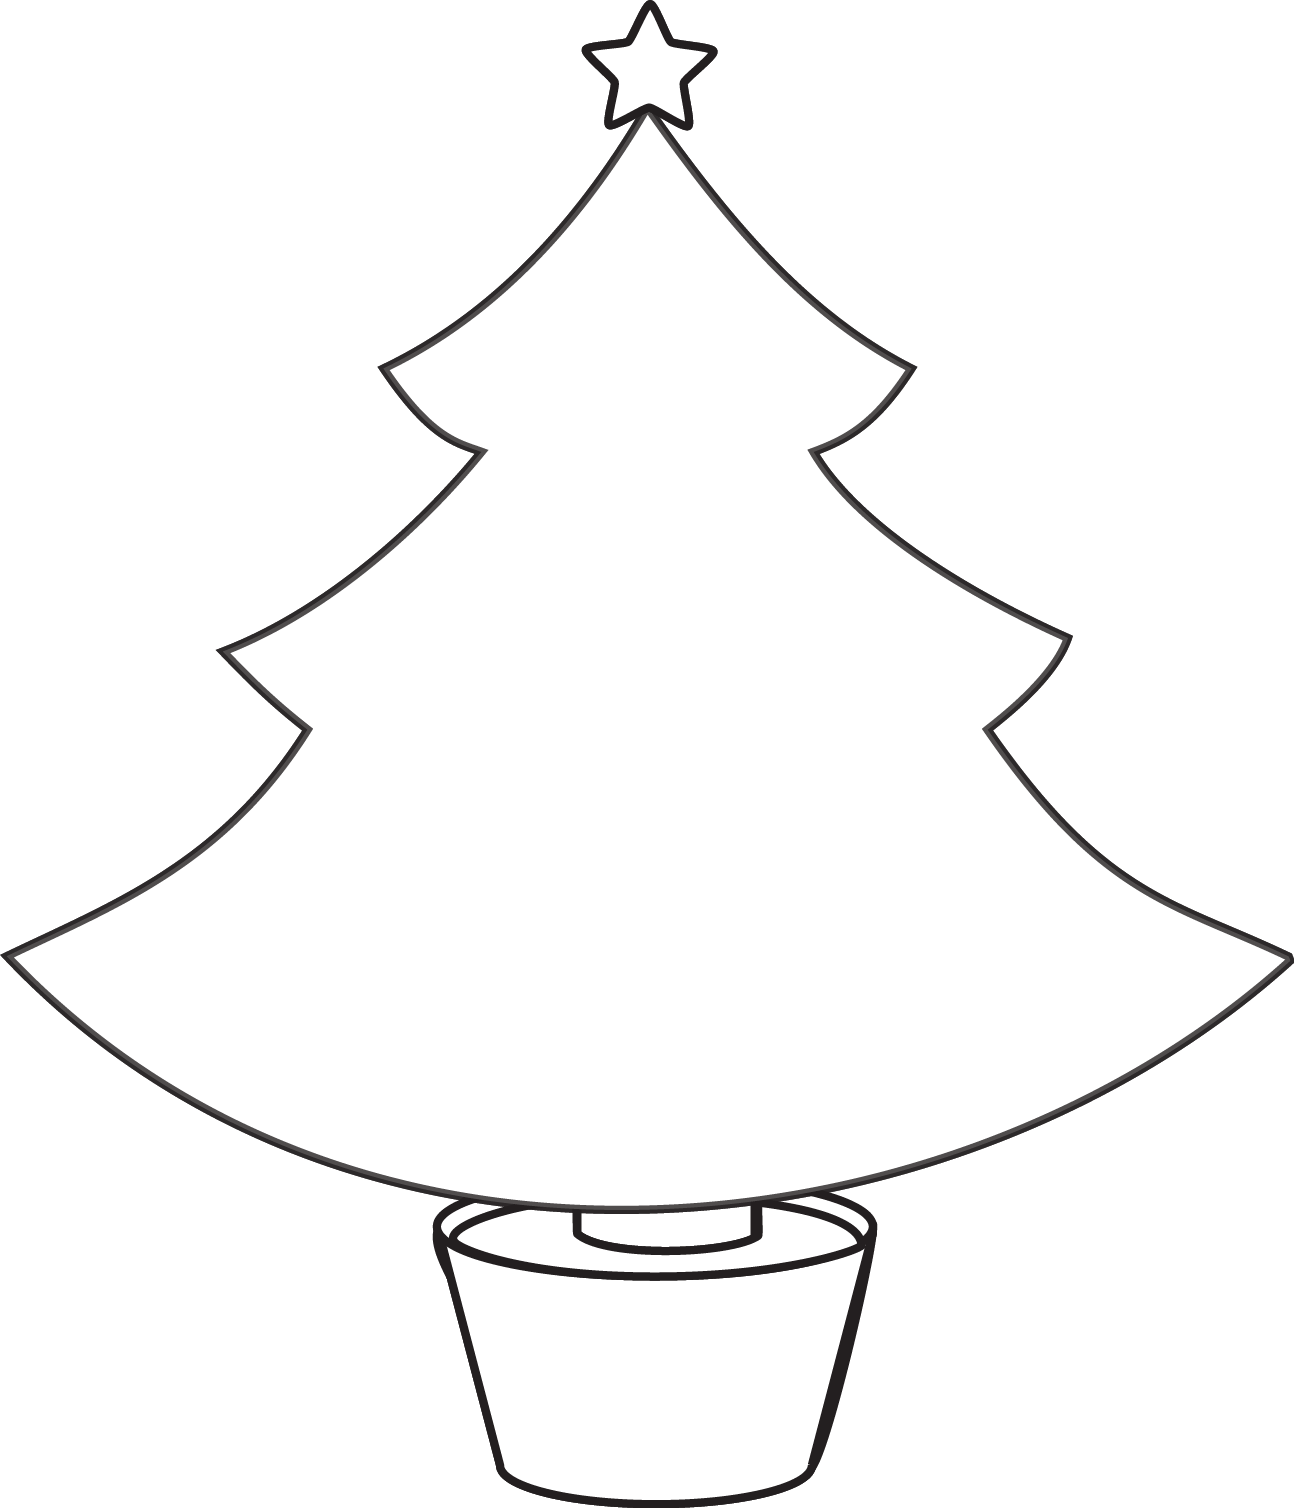 Coloring pages christmas tree blank christmas tree coloring pages - Clipart Christmas Tree Outline Google Search